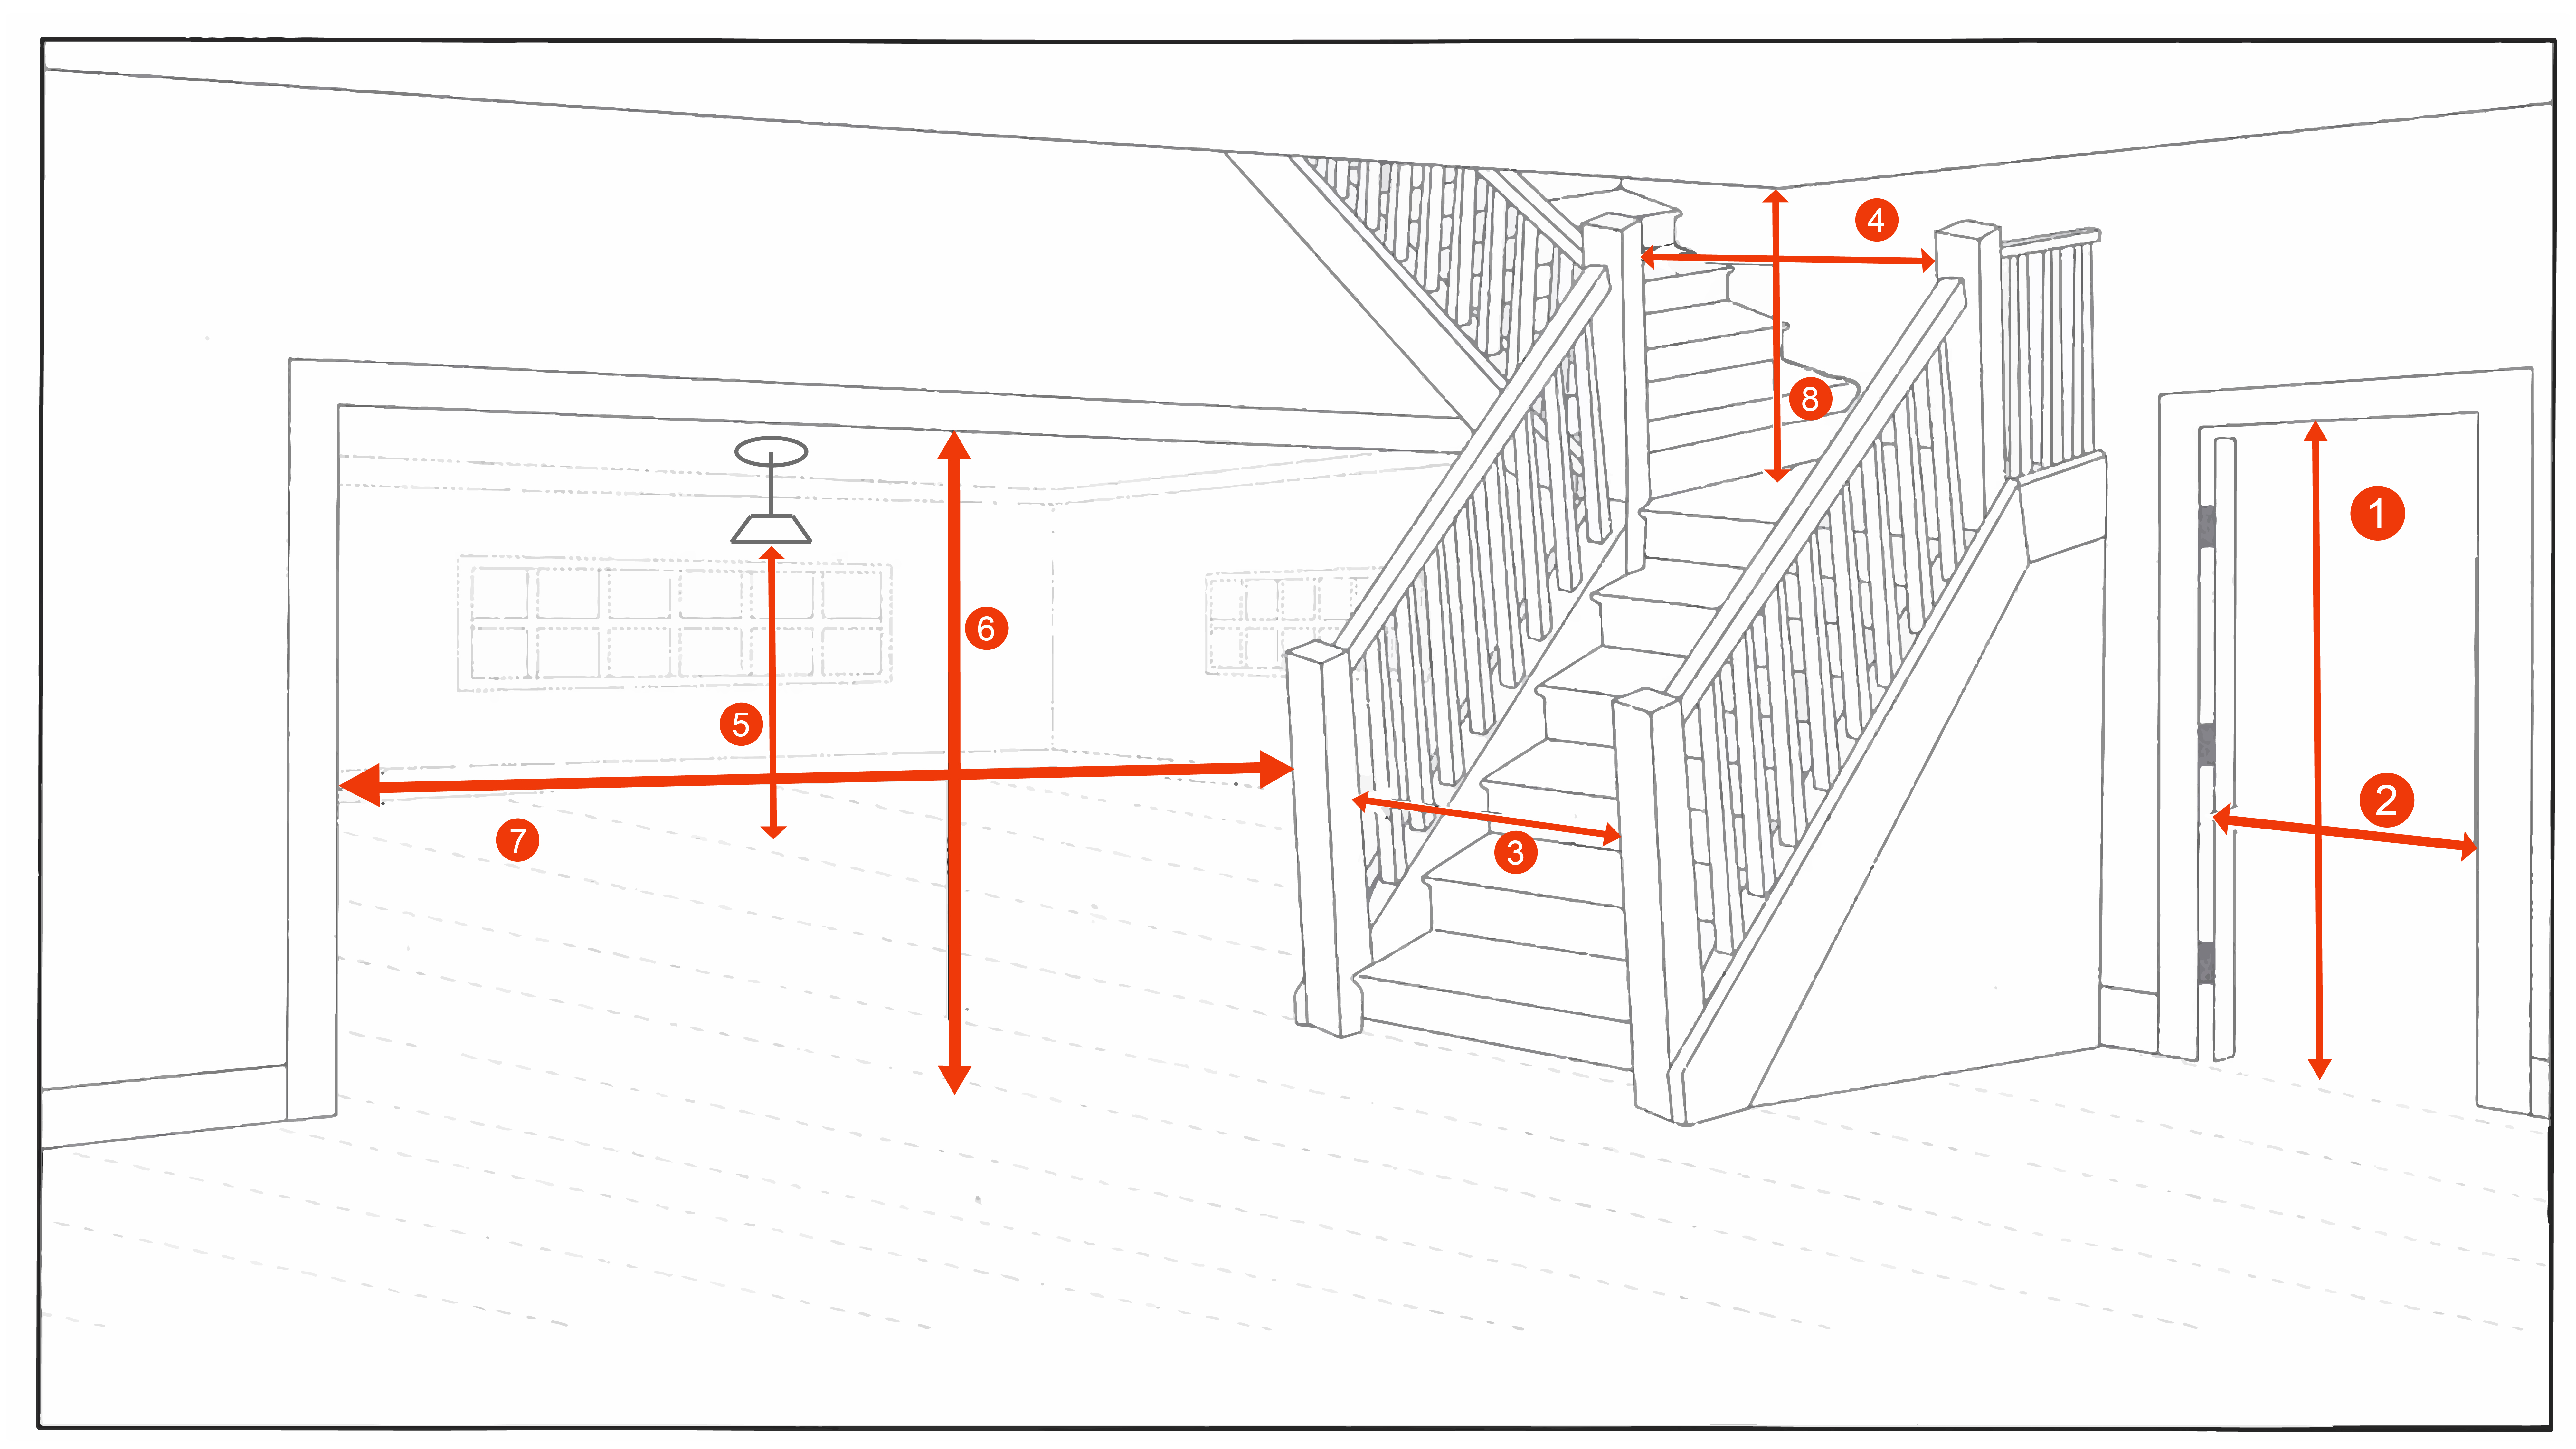 measuring for delivery inforgraphics including how to measure doors, staircase, ceilings